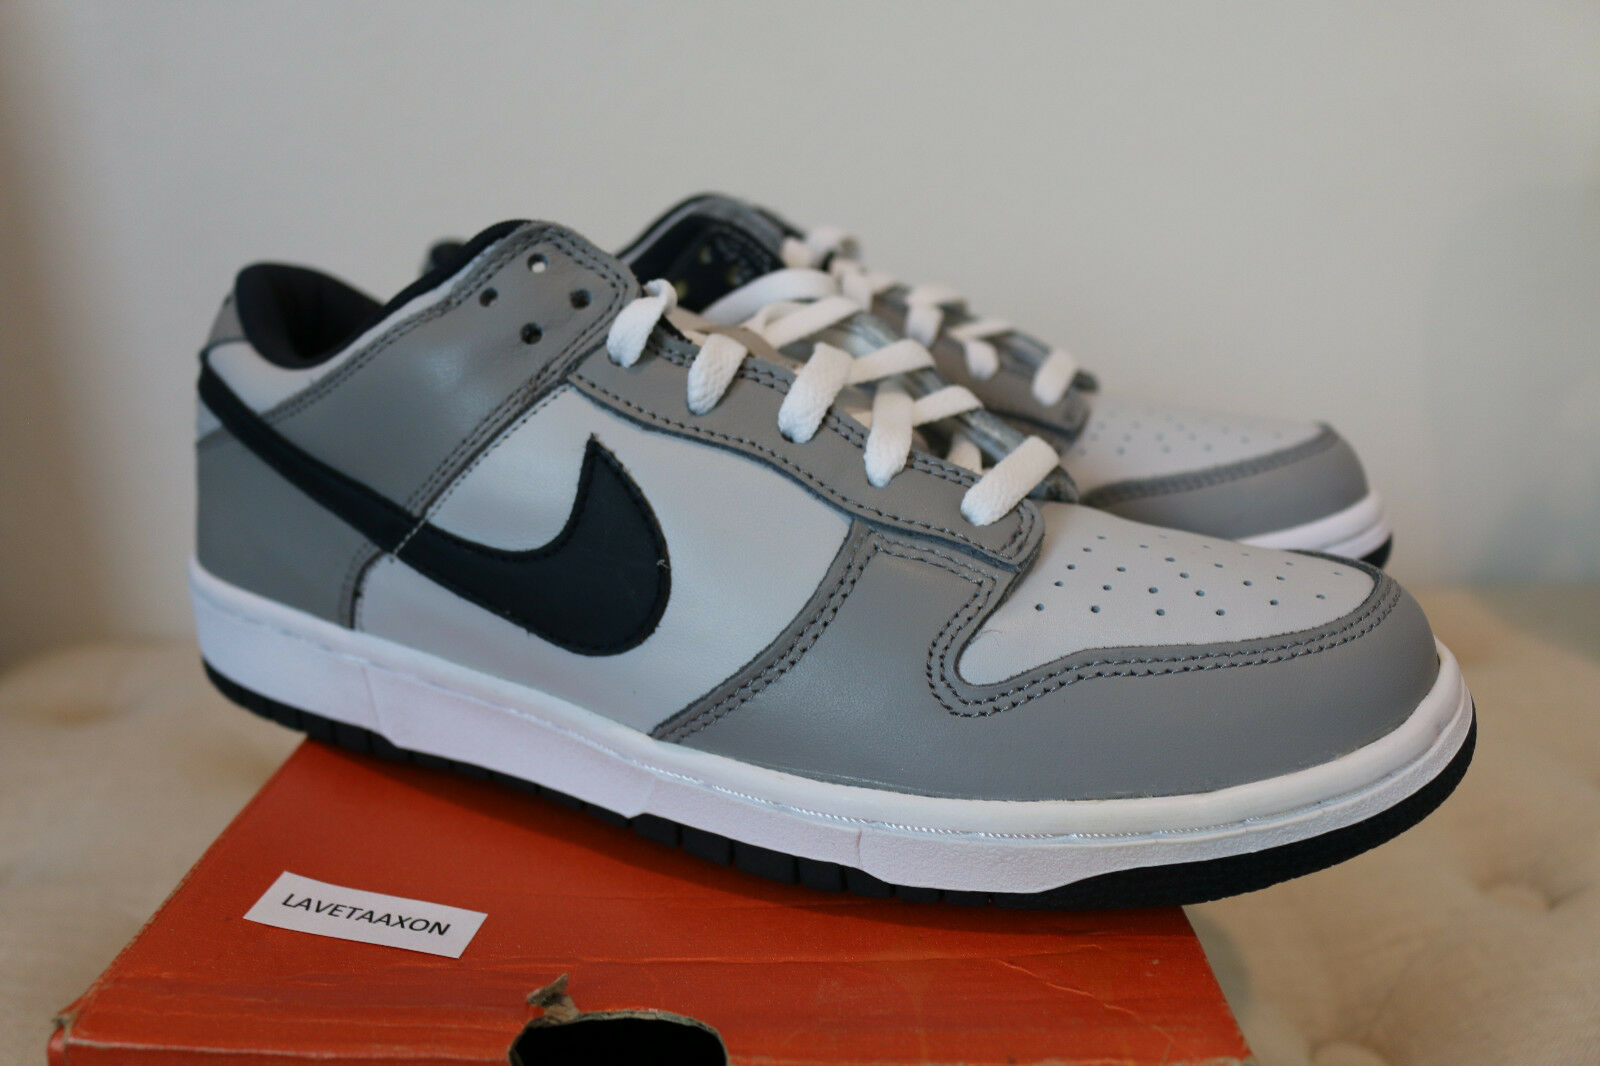 Nike Dunk Low Pro OBSIDIAN 9.5 fat tounge co co co jp putty smurf supreme sb 9ad2f4